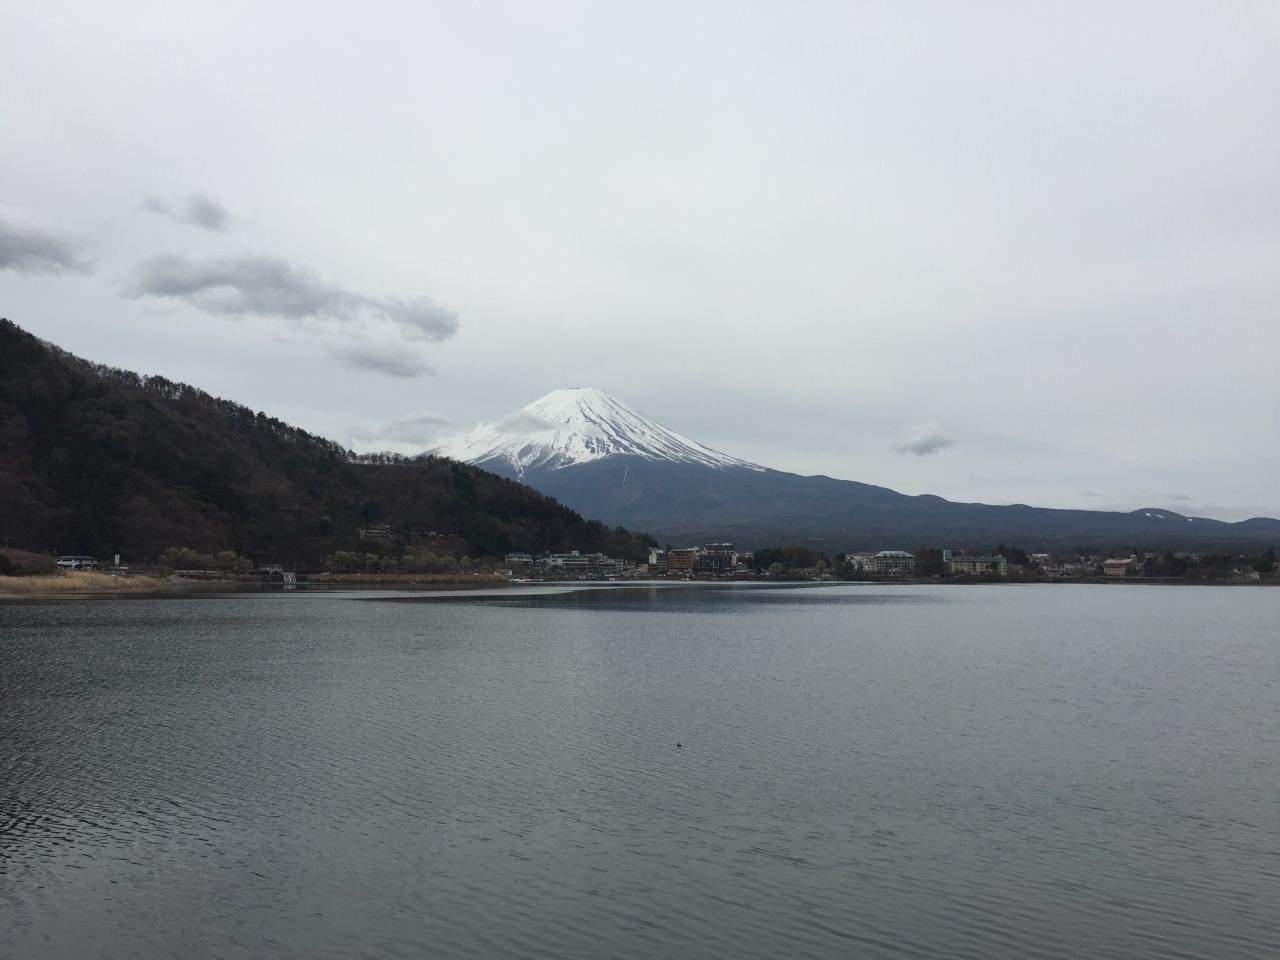 Perfect view of Mt Fuji and the lake!